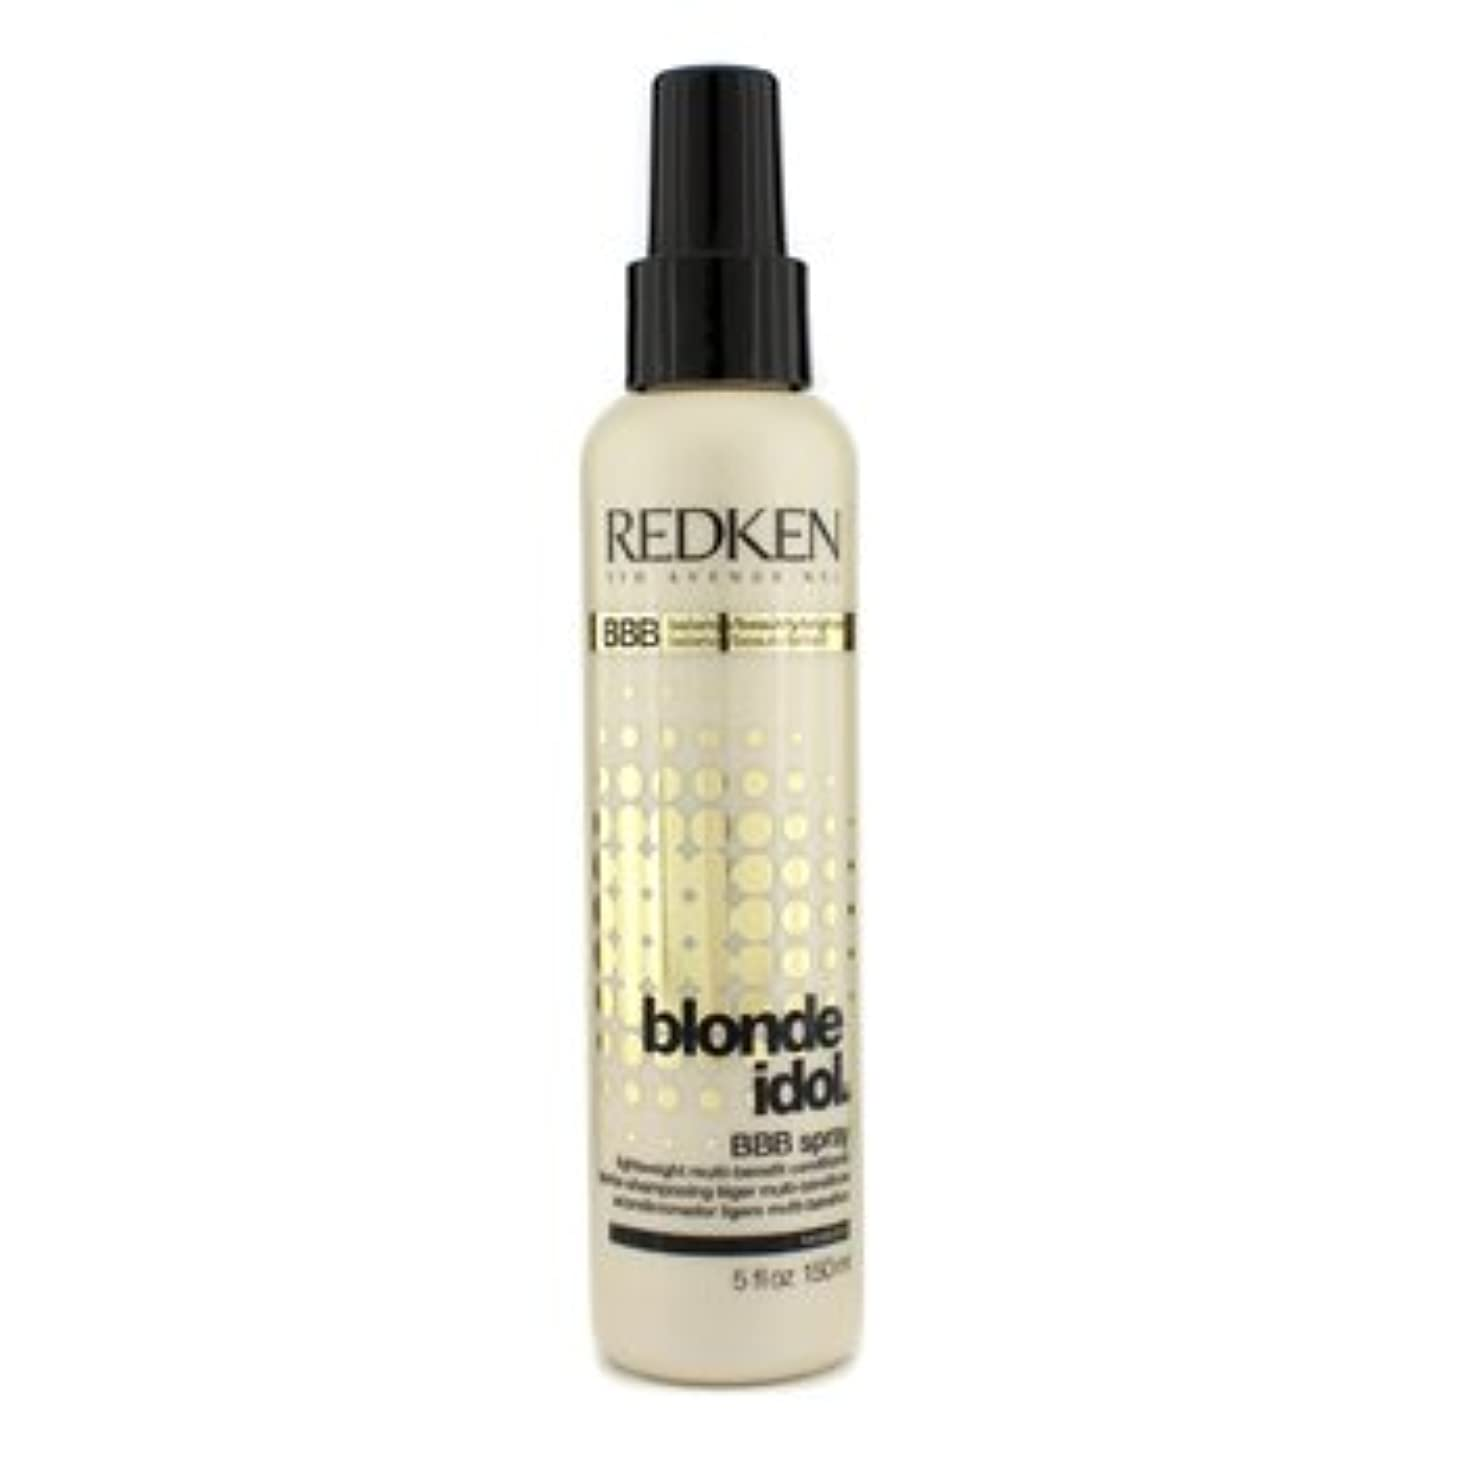 プラスチックもし温帯[Redken] Blonde Idol BBB Spray Lightweight Multi-Benefit Conditioner (For Beautiful Blonde Hair) 150ml/5oz